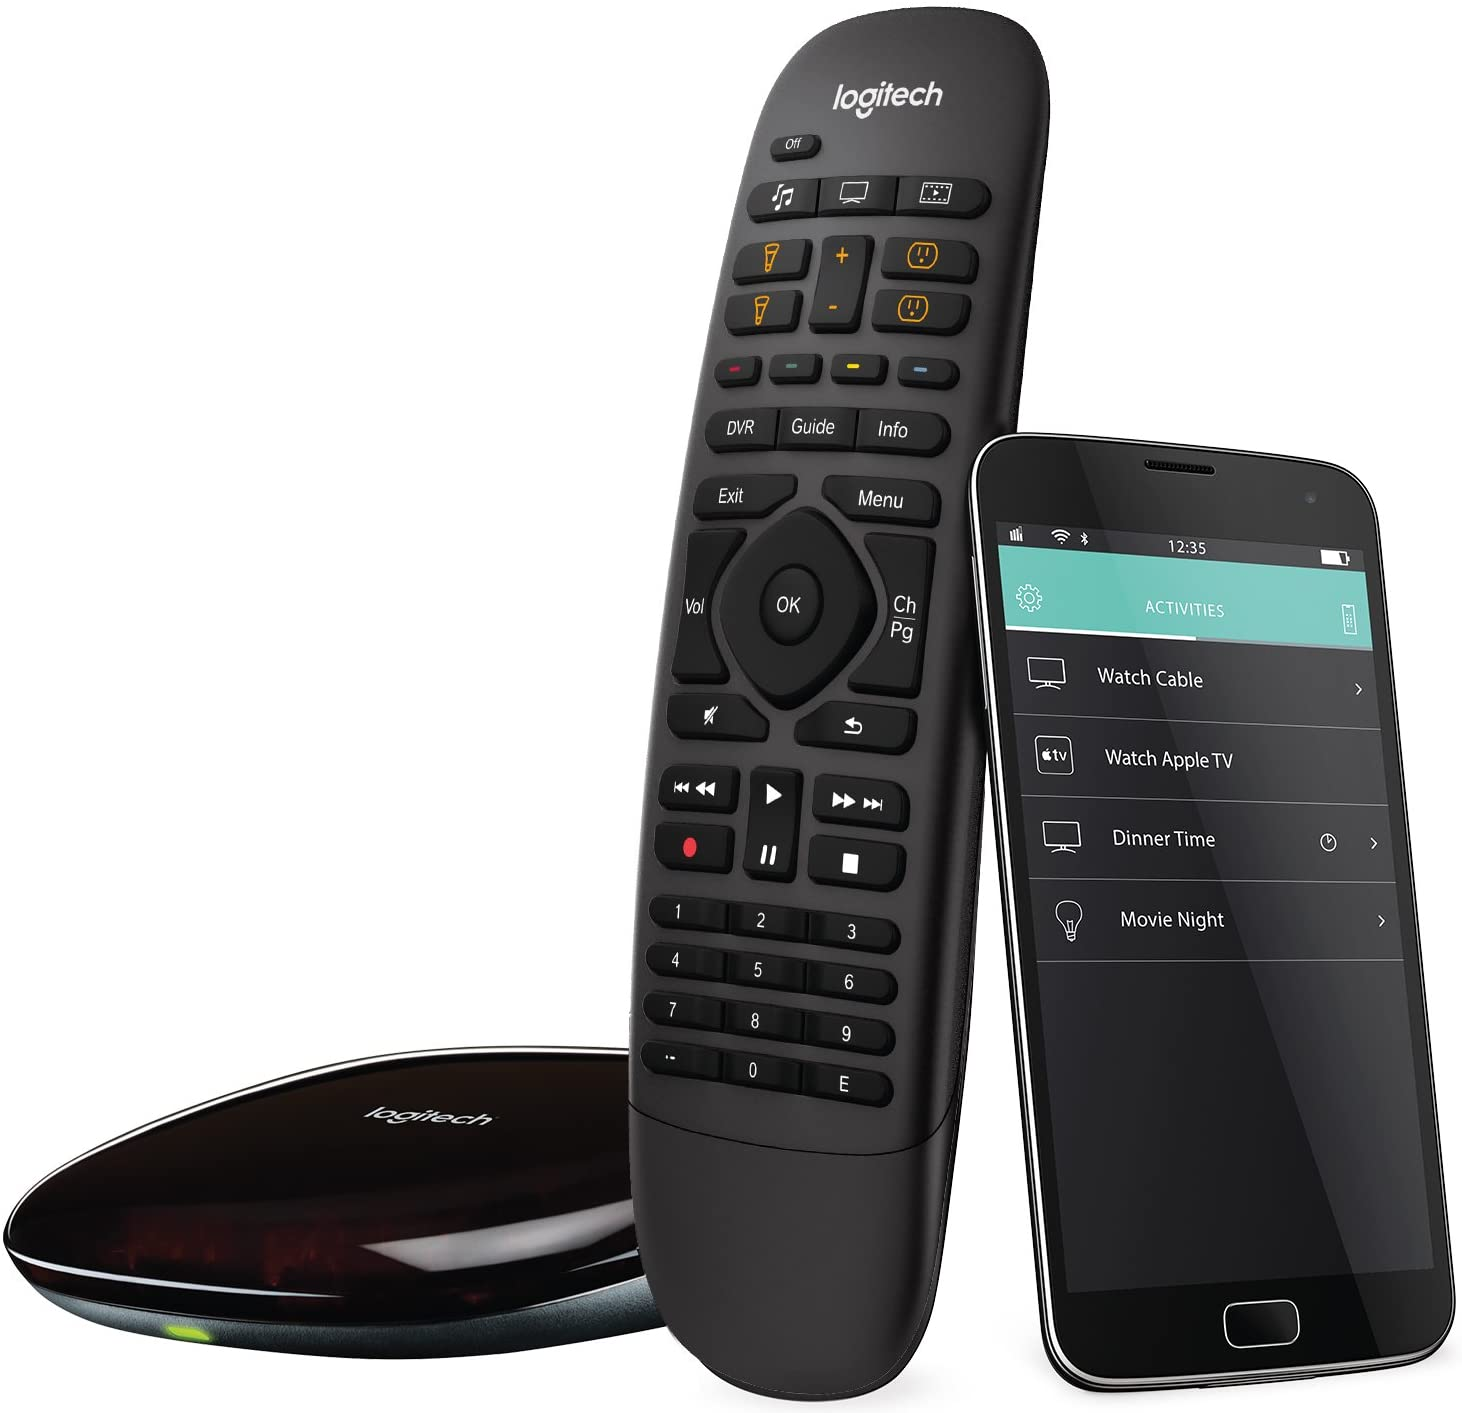 Logitech Harmony Companion All in One Remote Control for Smart Home and Entertainment Devices, Hub & App, Works With Alexa – Black: Home Audio & Theater